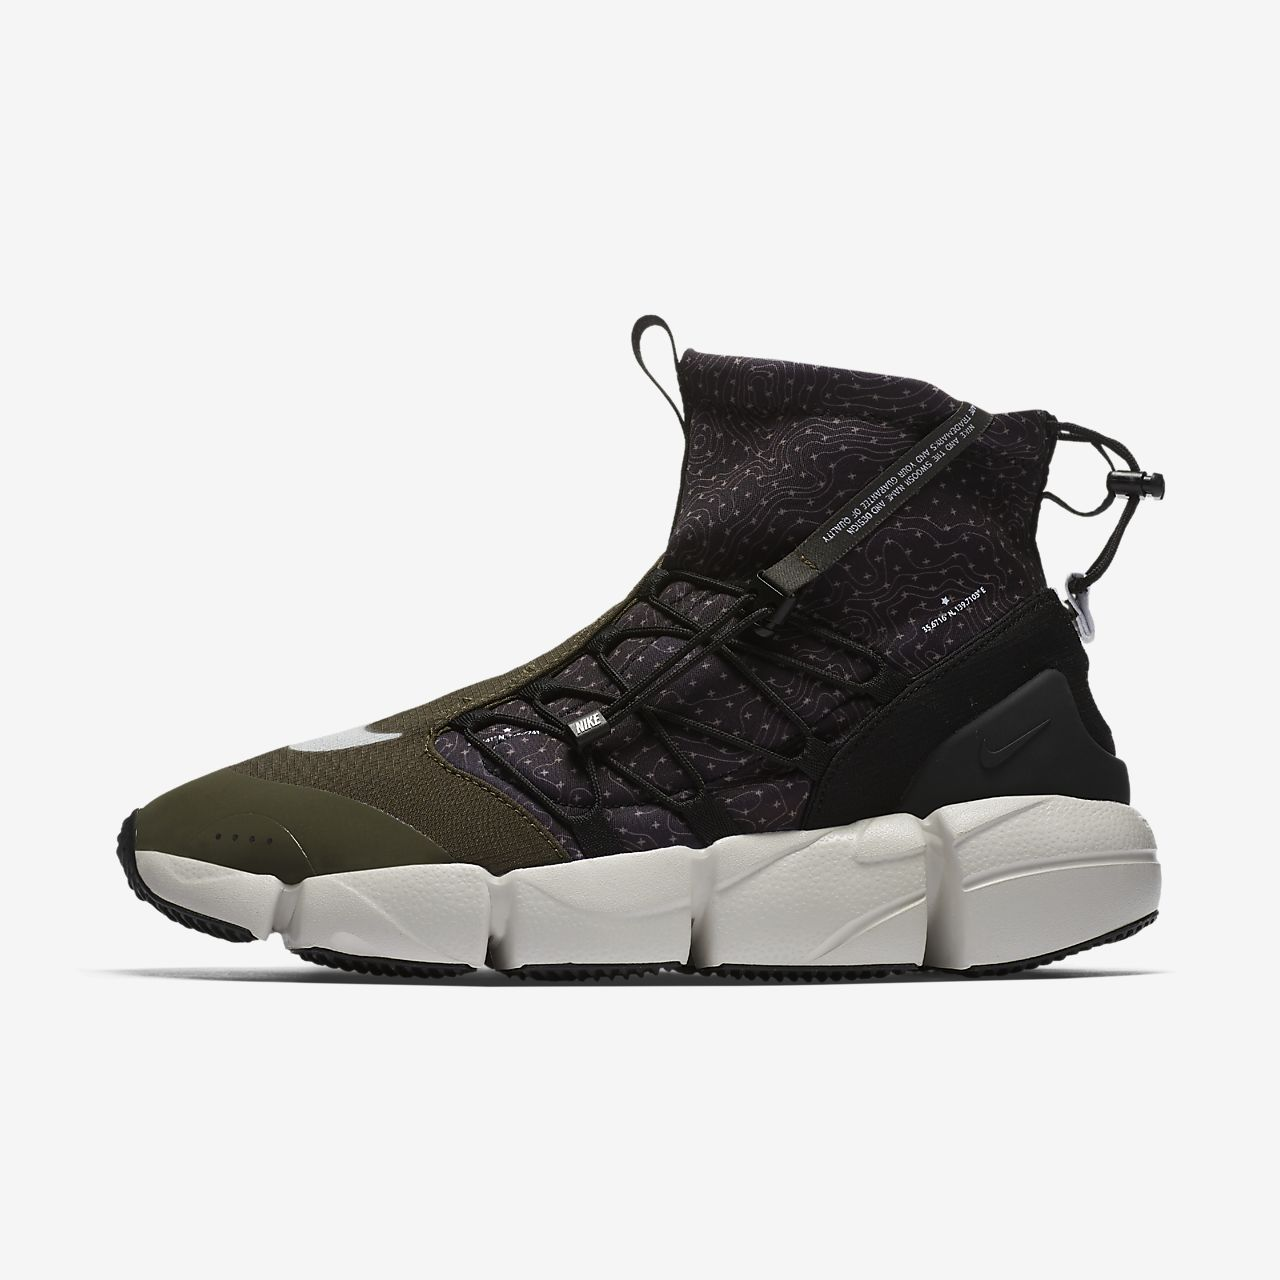 Nike Air Footscape Mid Utility yqrvoZvHU4